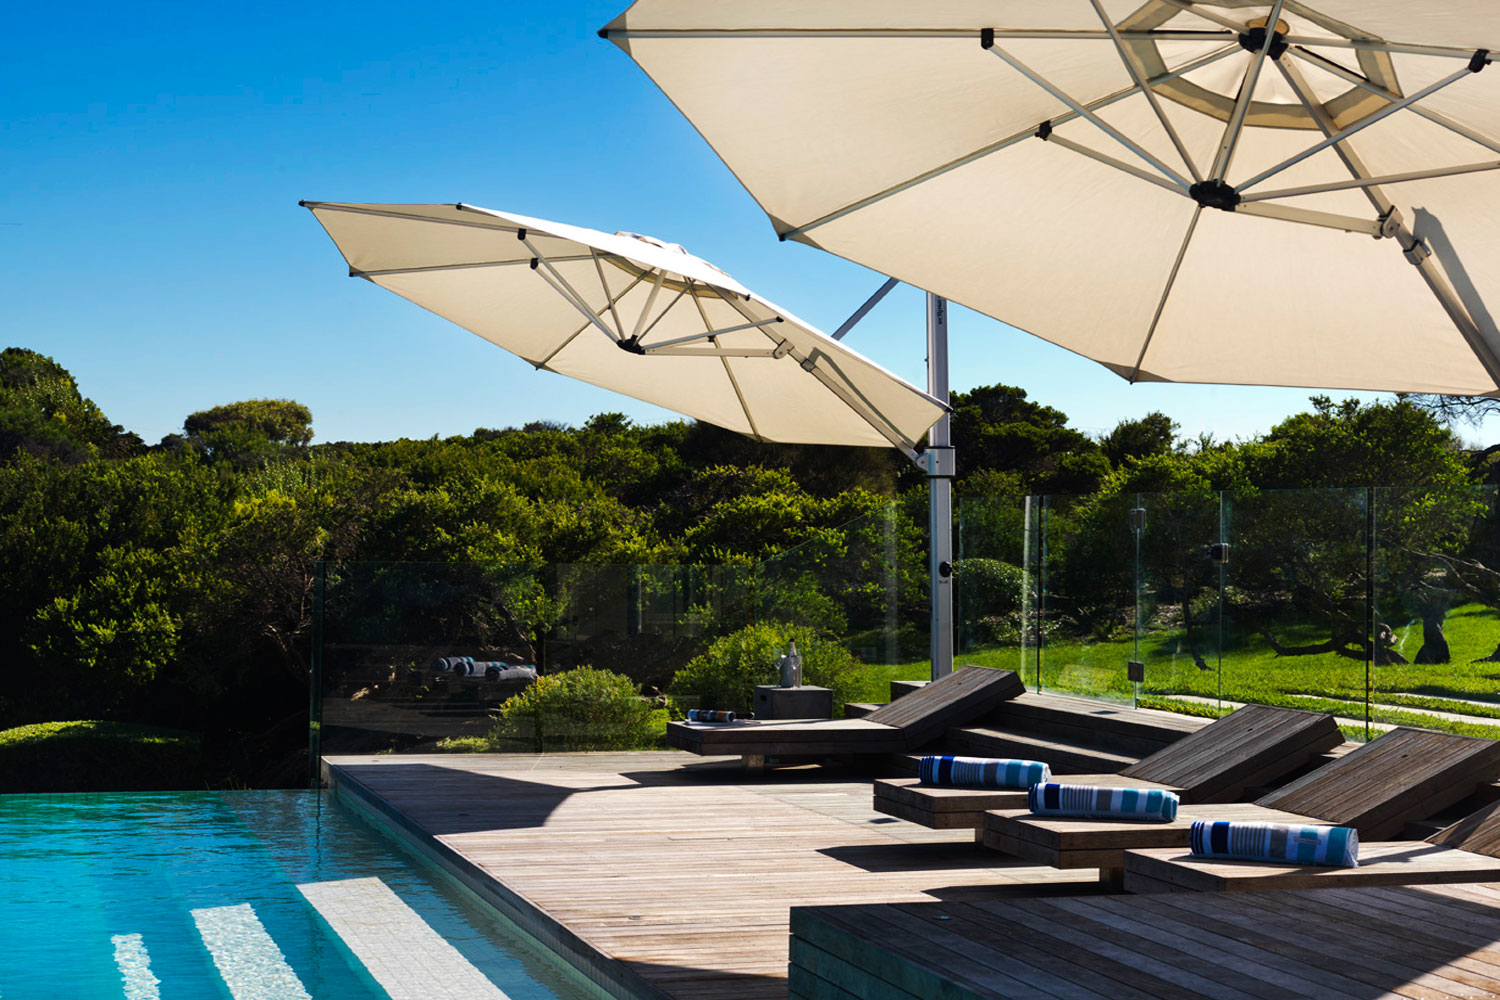 CANTILEVER UMBRELLAS AND OUTDOOR UMBRELLAS